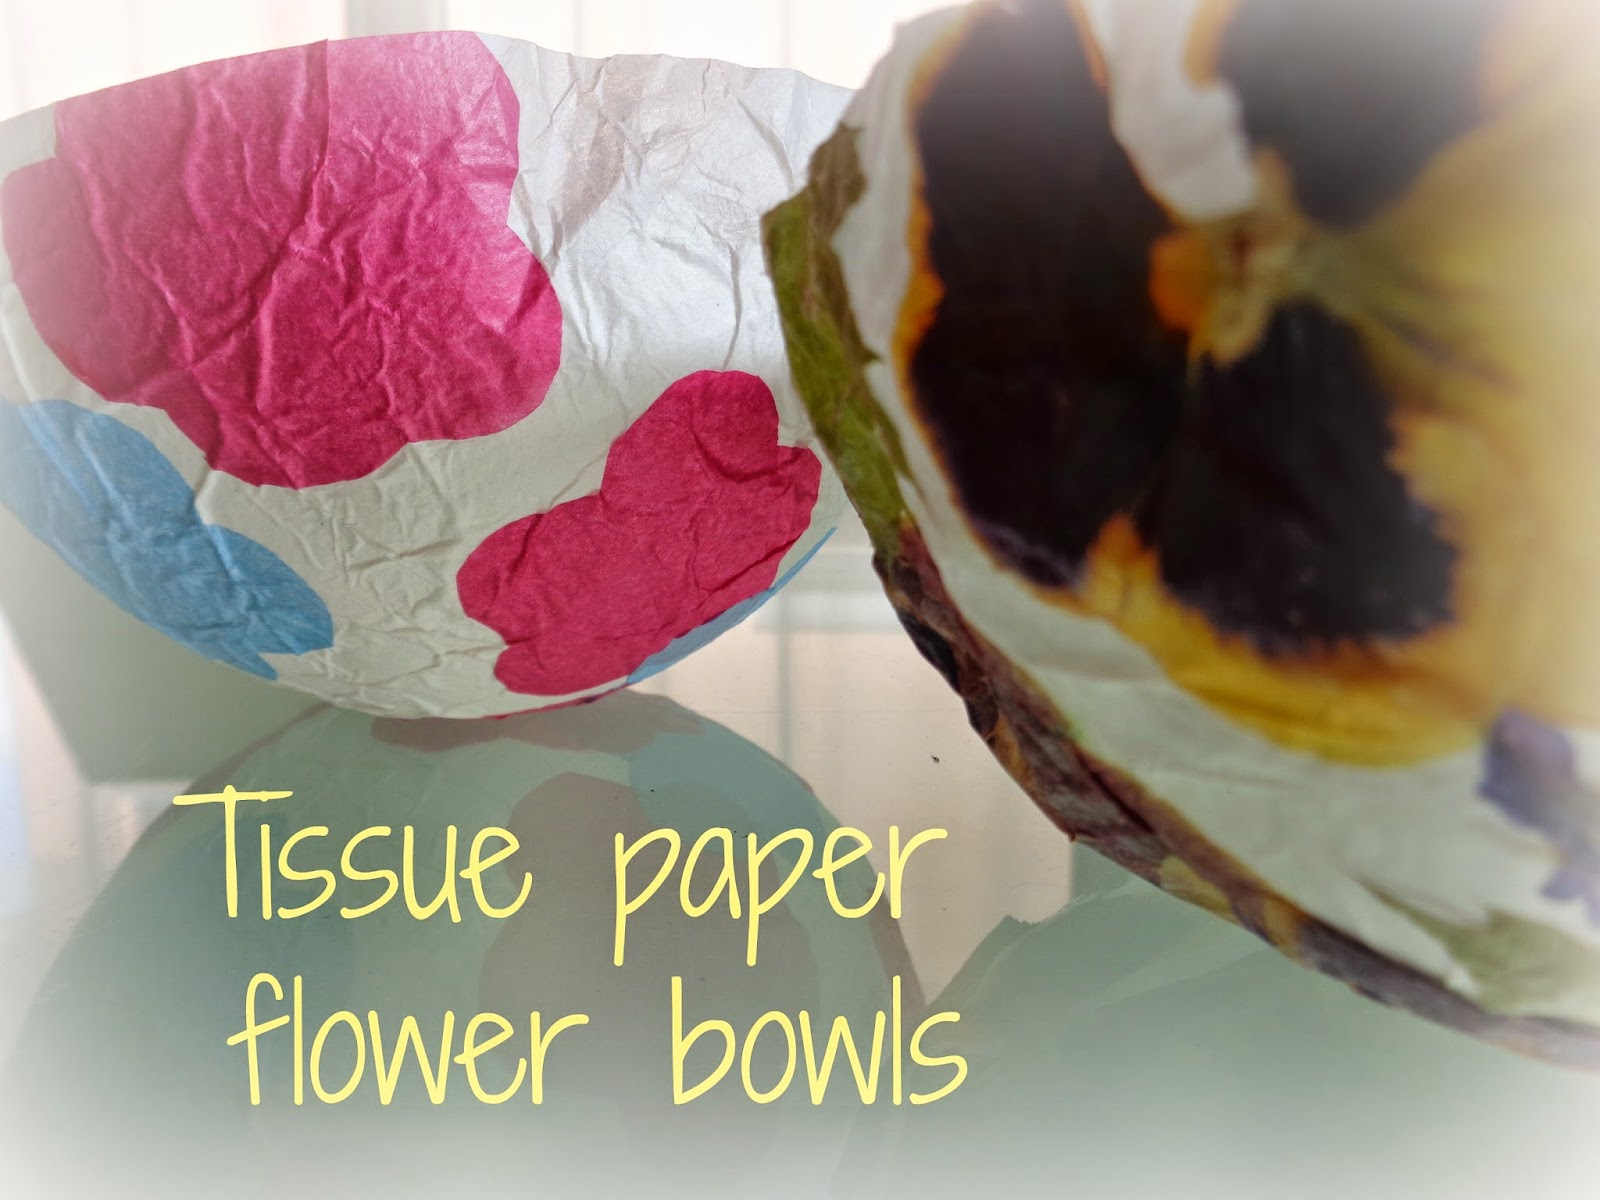 Mothers messy madness tissue paper flower bowls via pinterest i found a great idea for making bowls out of tissue paper glue and balloons mightylinksfo